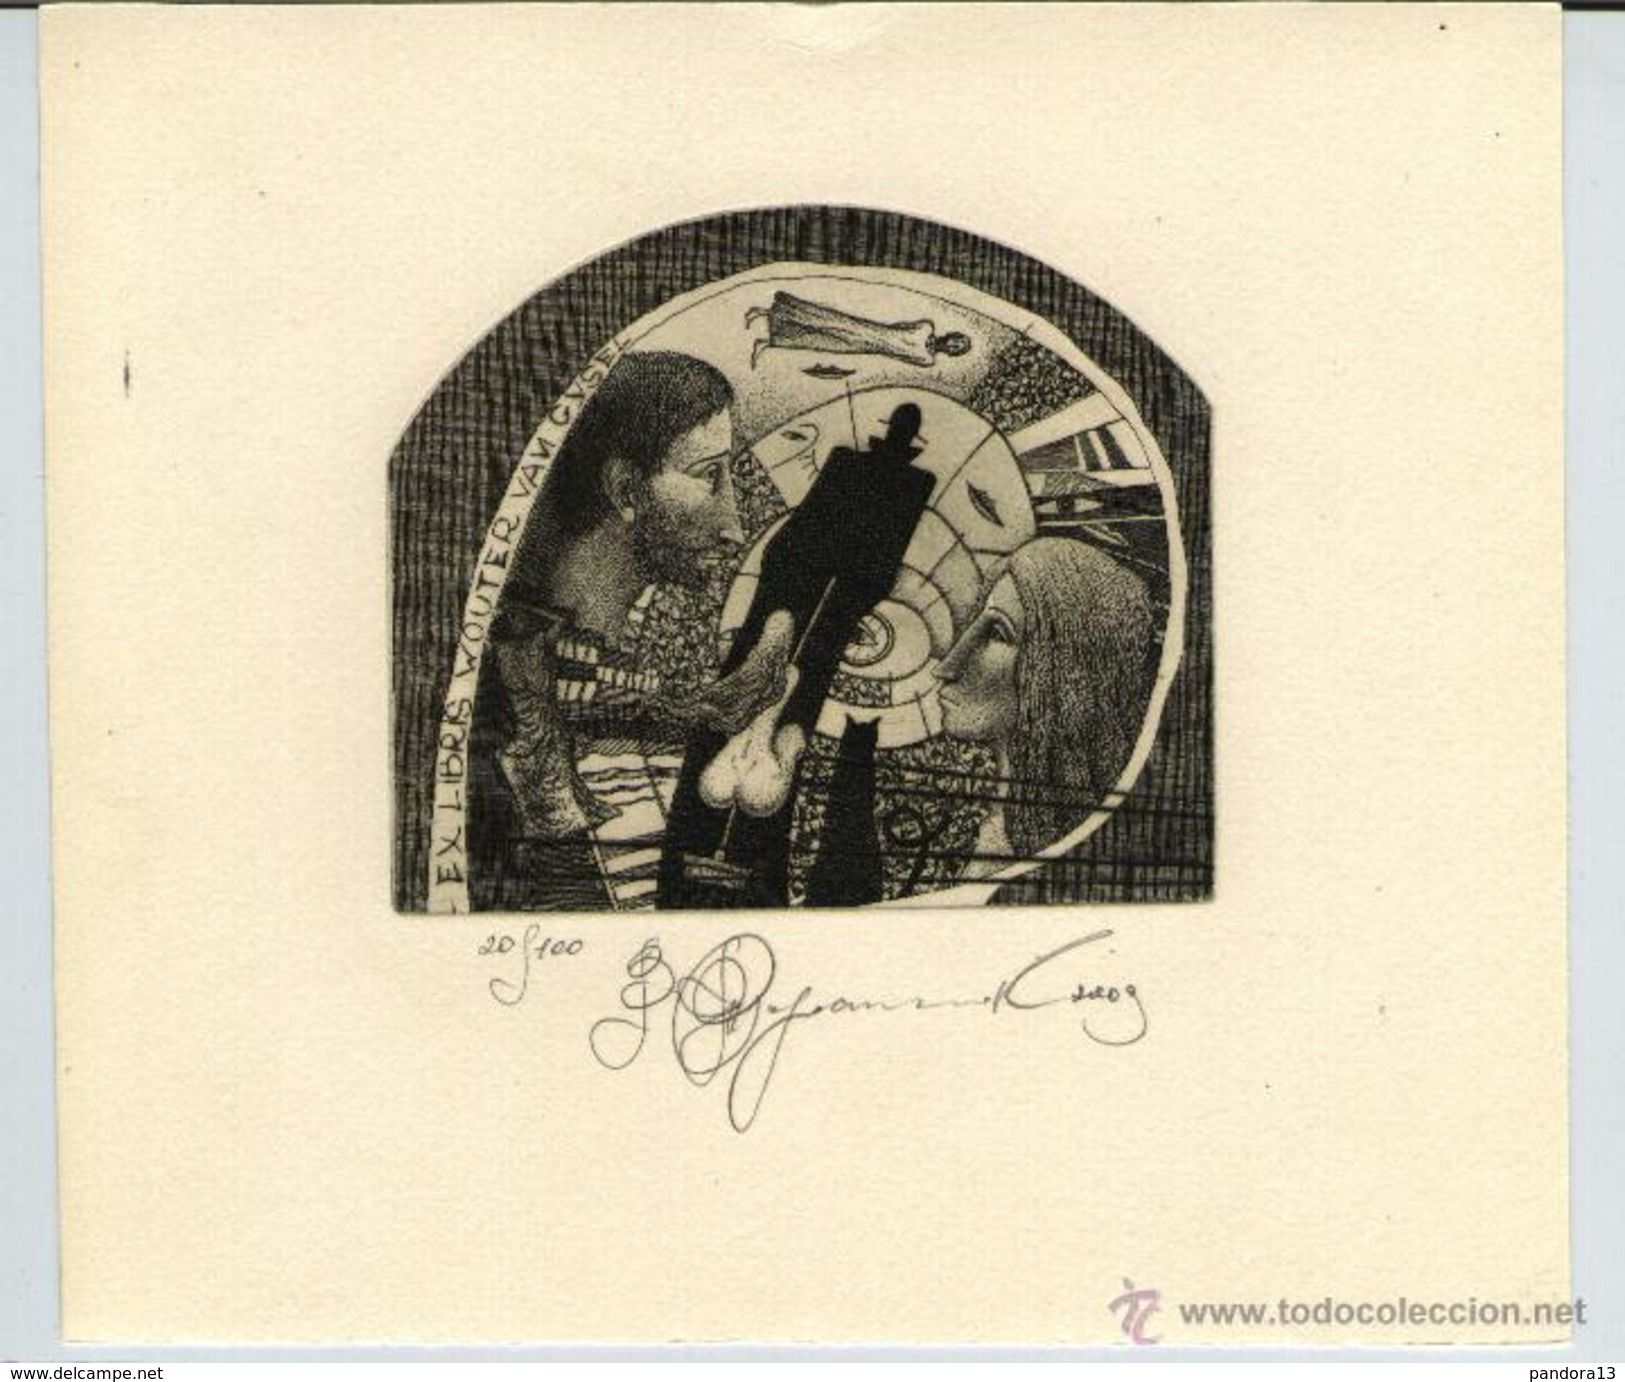 Ank Spronk Cat EX LIBRIS Father Garden Kitty Cat Signed Etching c3 Etching